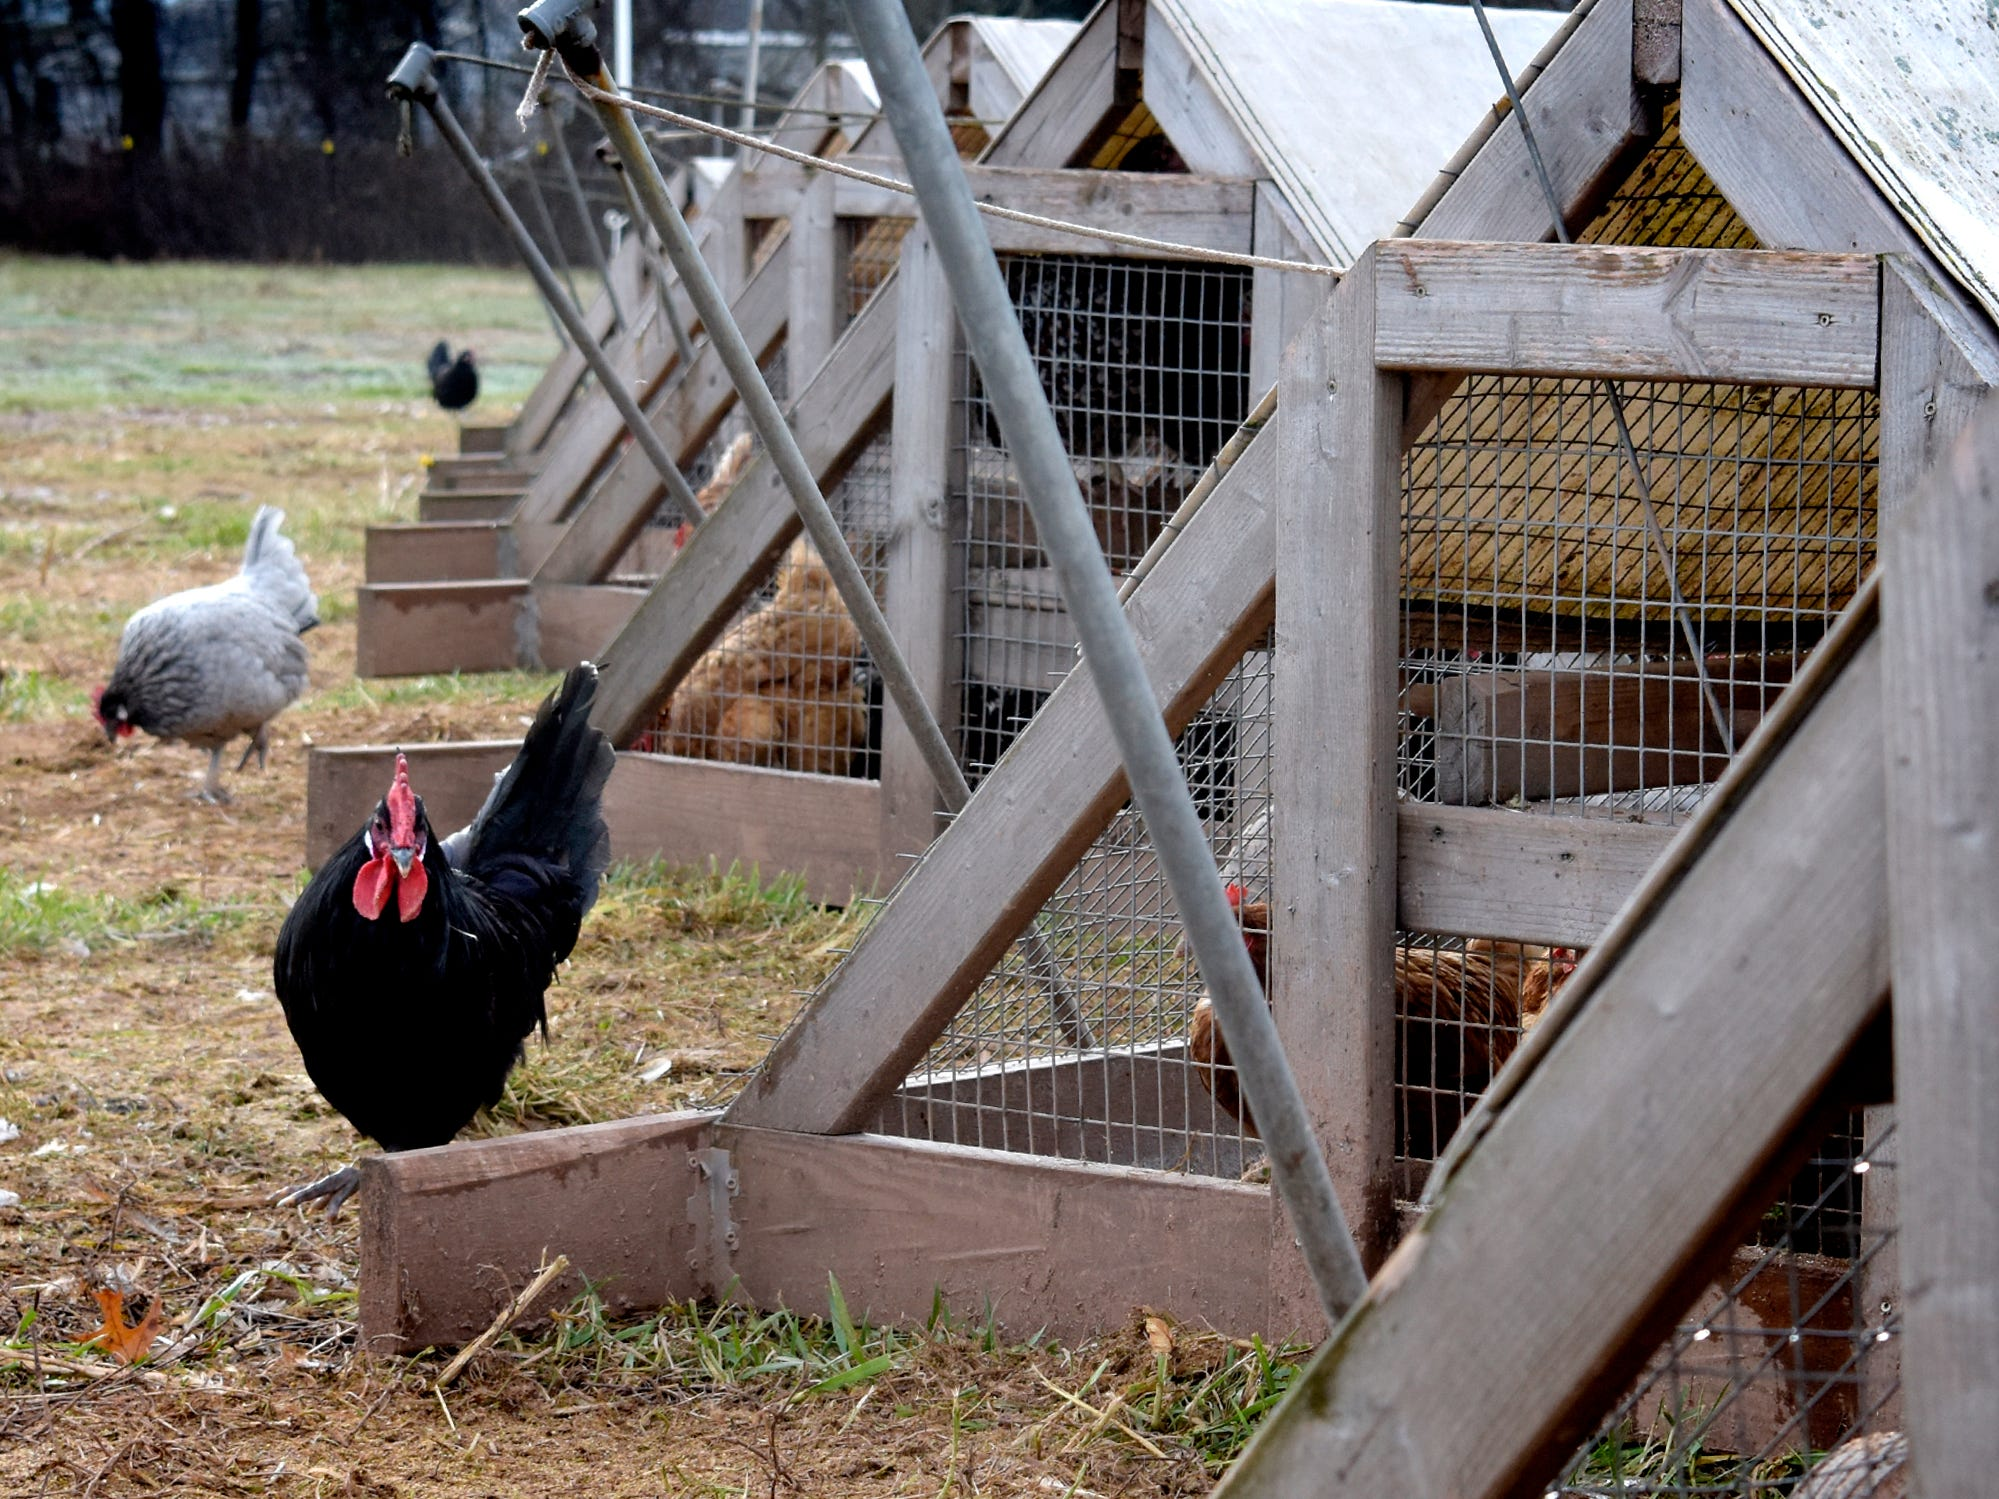 A rooster walks along portable chicken pens at his family's sustainable Sunnyside Farm in Newberry Township Friday, Jan. 4, 2019. Homer Walden designed the pens which allow the egg layers to feed on clean, fresh grass. Bill Kalina photo